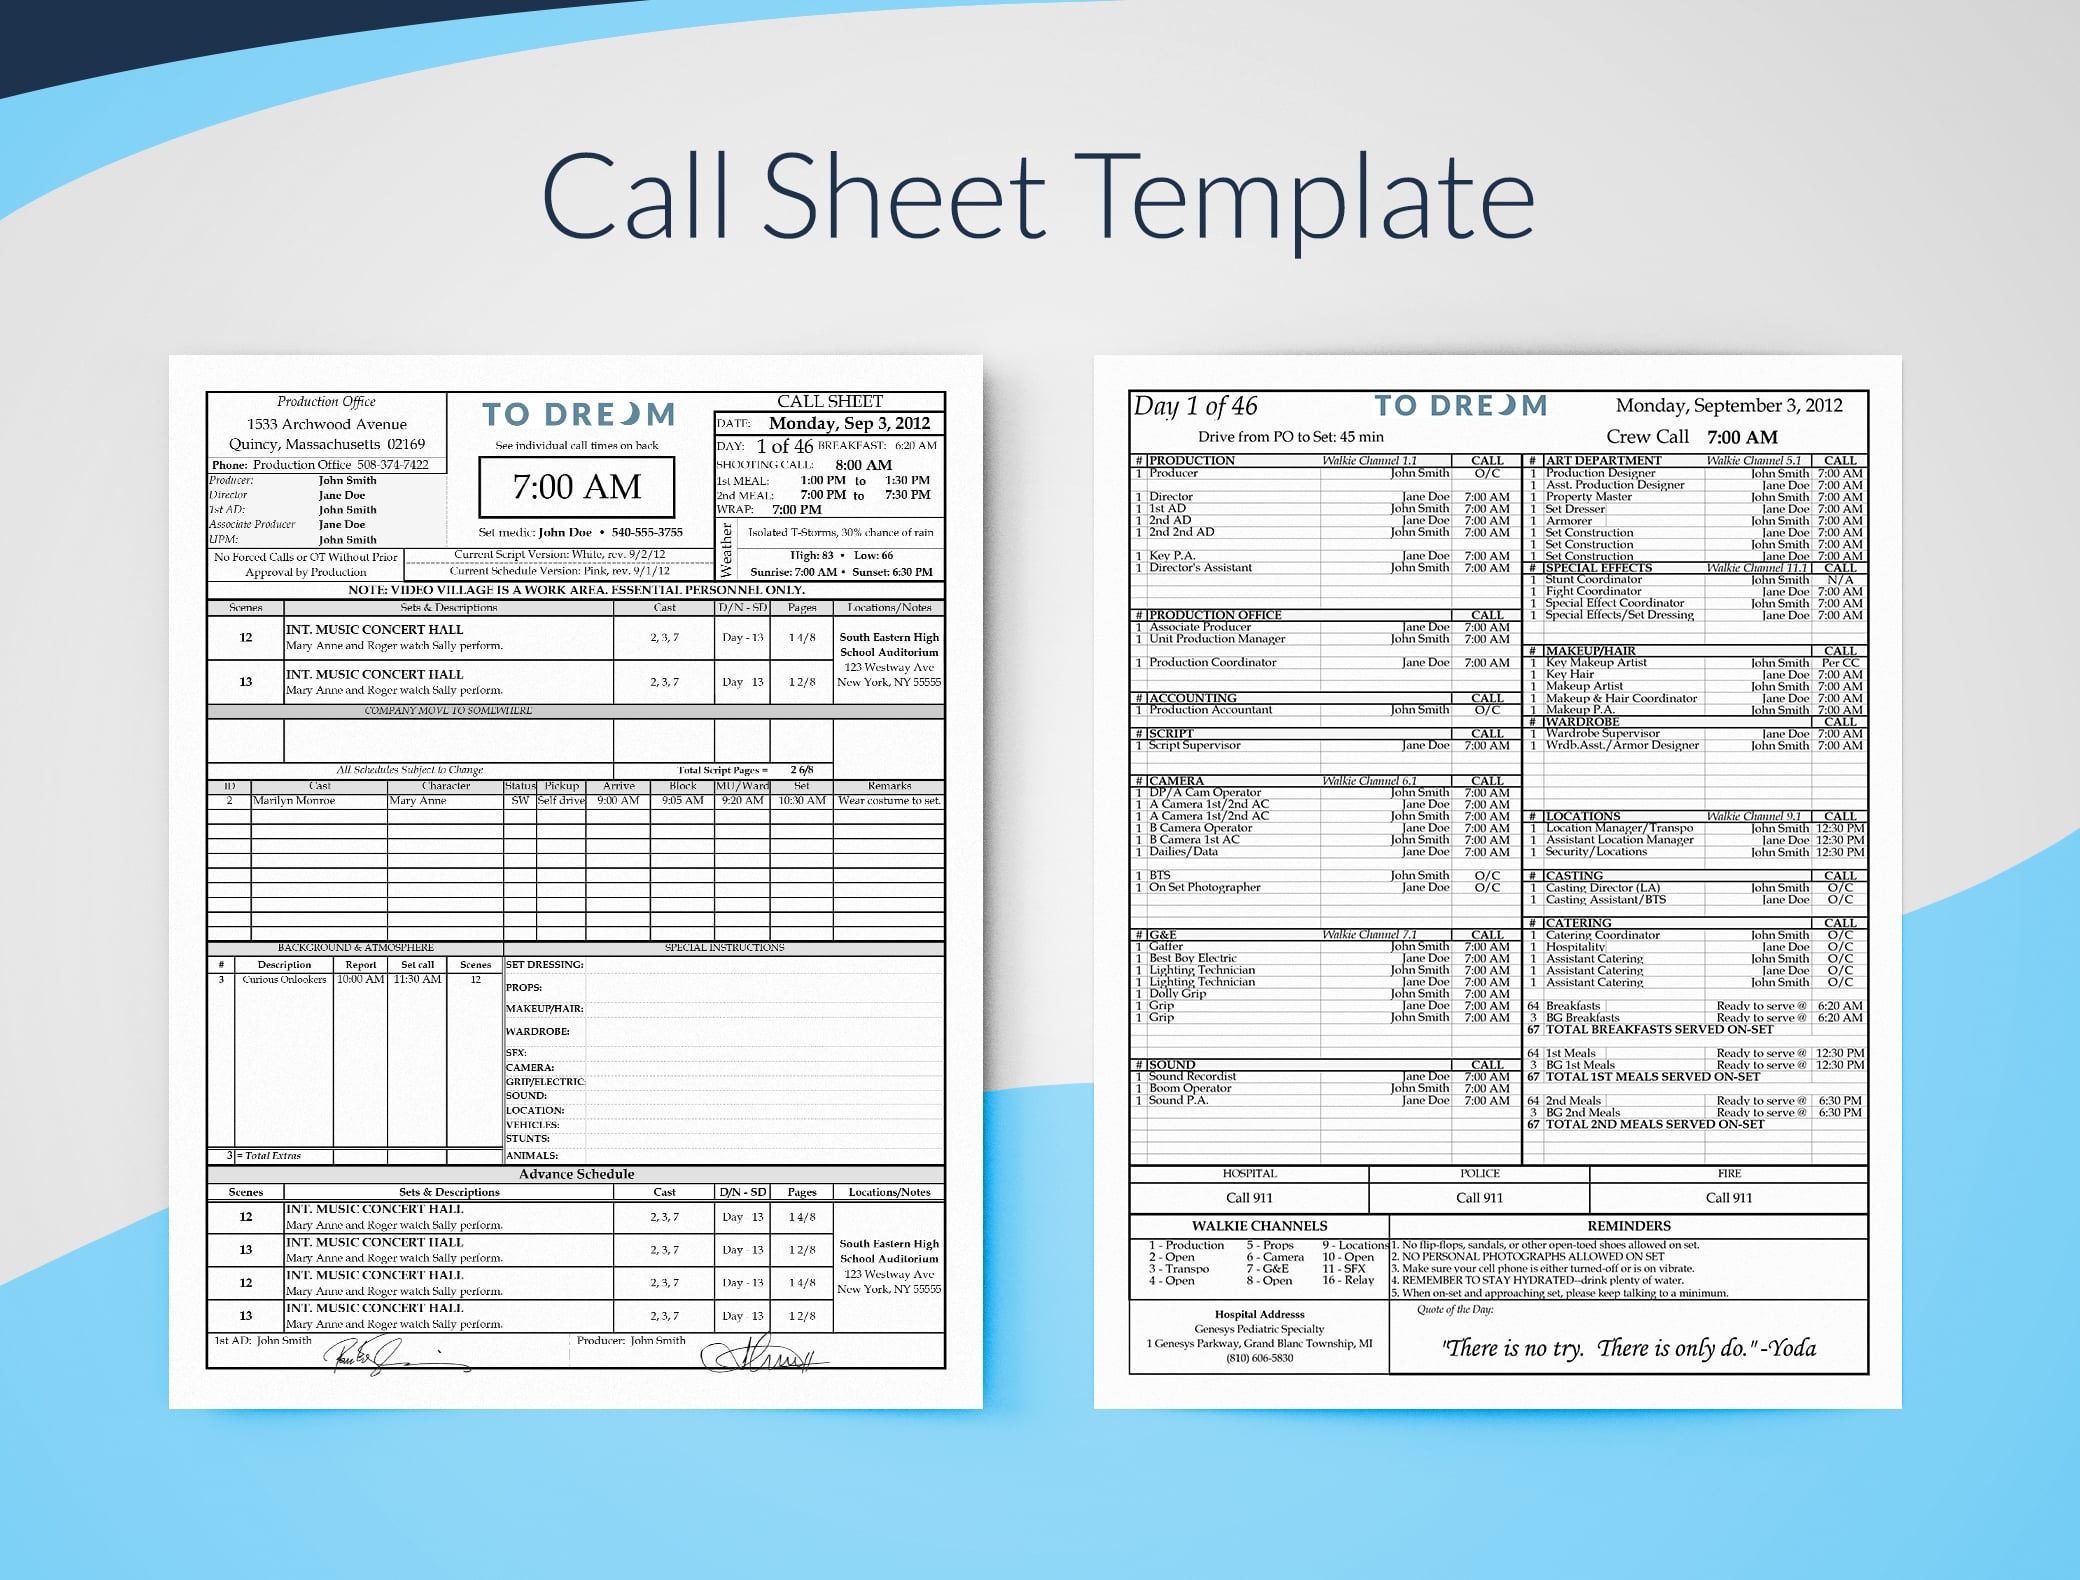 call sheet template excel free download sethero call sheet software. Black Bedroom Furniture Sets. Home Design Ideas